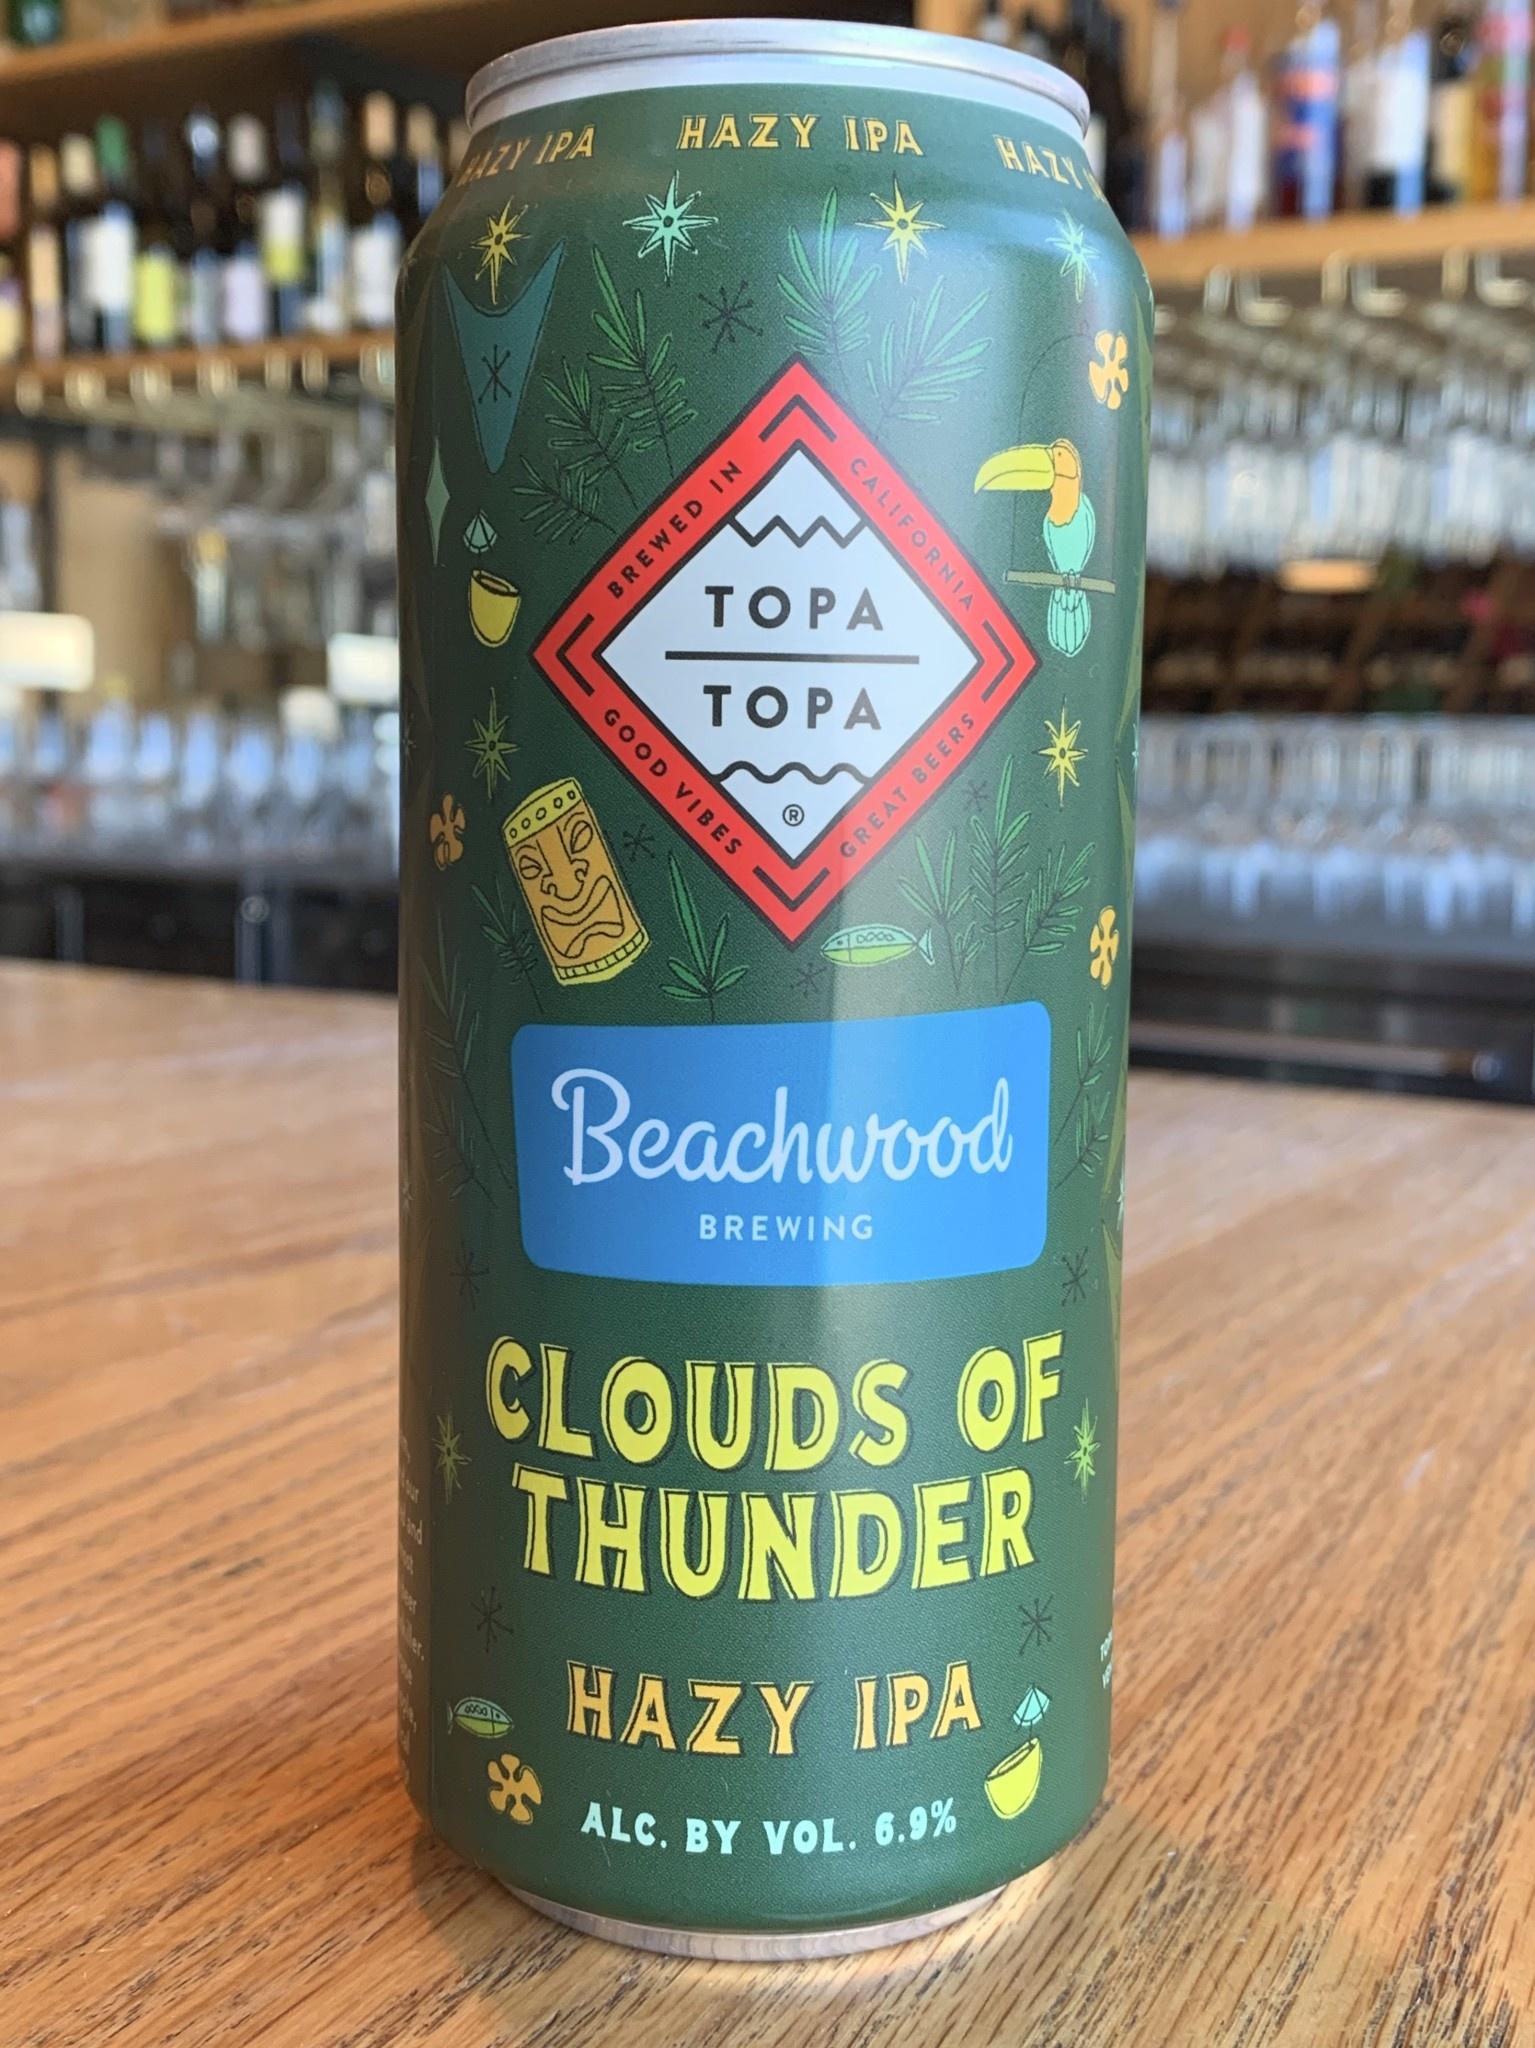 Topa Topa Brewing Co. Topa Topa Brewing Clouds of Thunder Hazy IPA 16oz